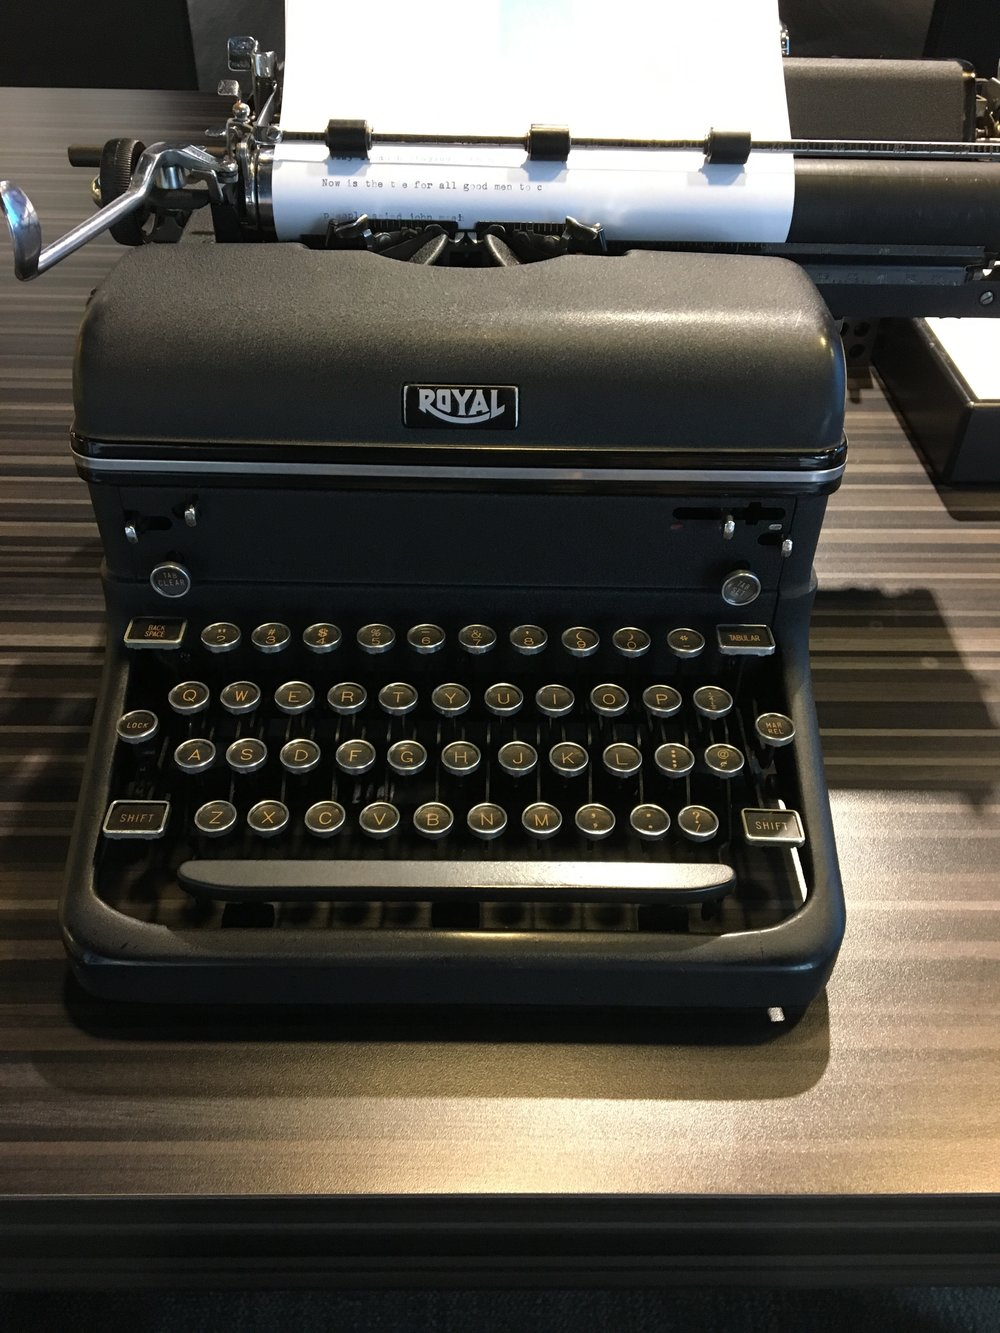 One of the tools on display in the writer's craft section of the museum. Patrons are encouraged to sit and type their own stories.